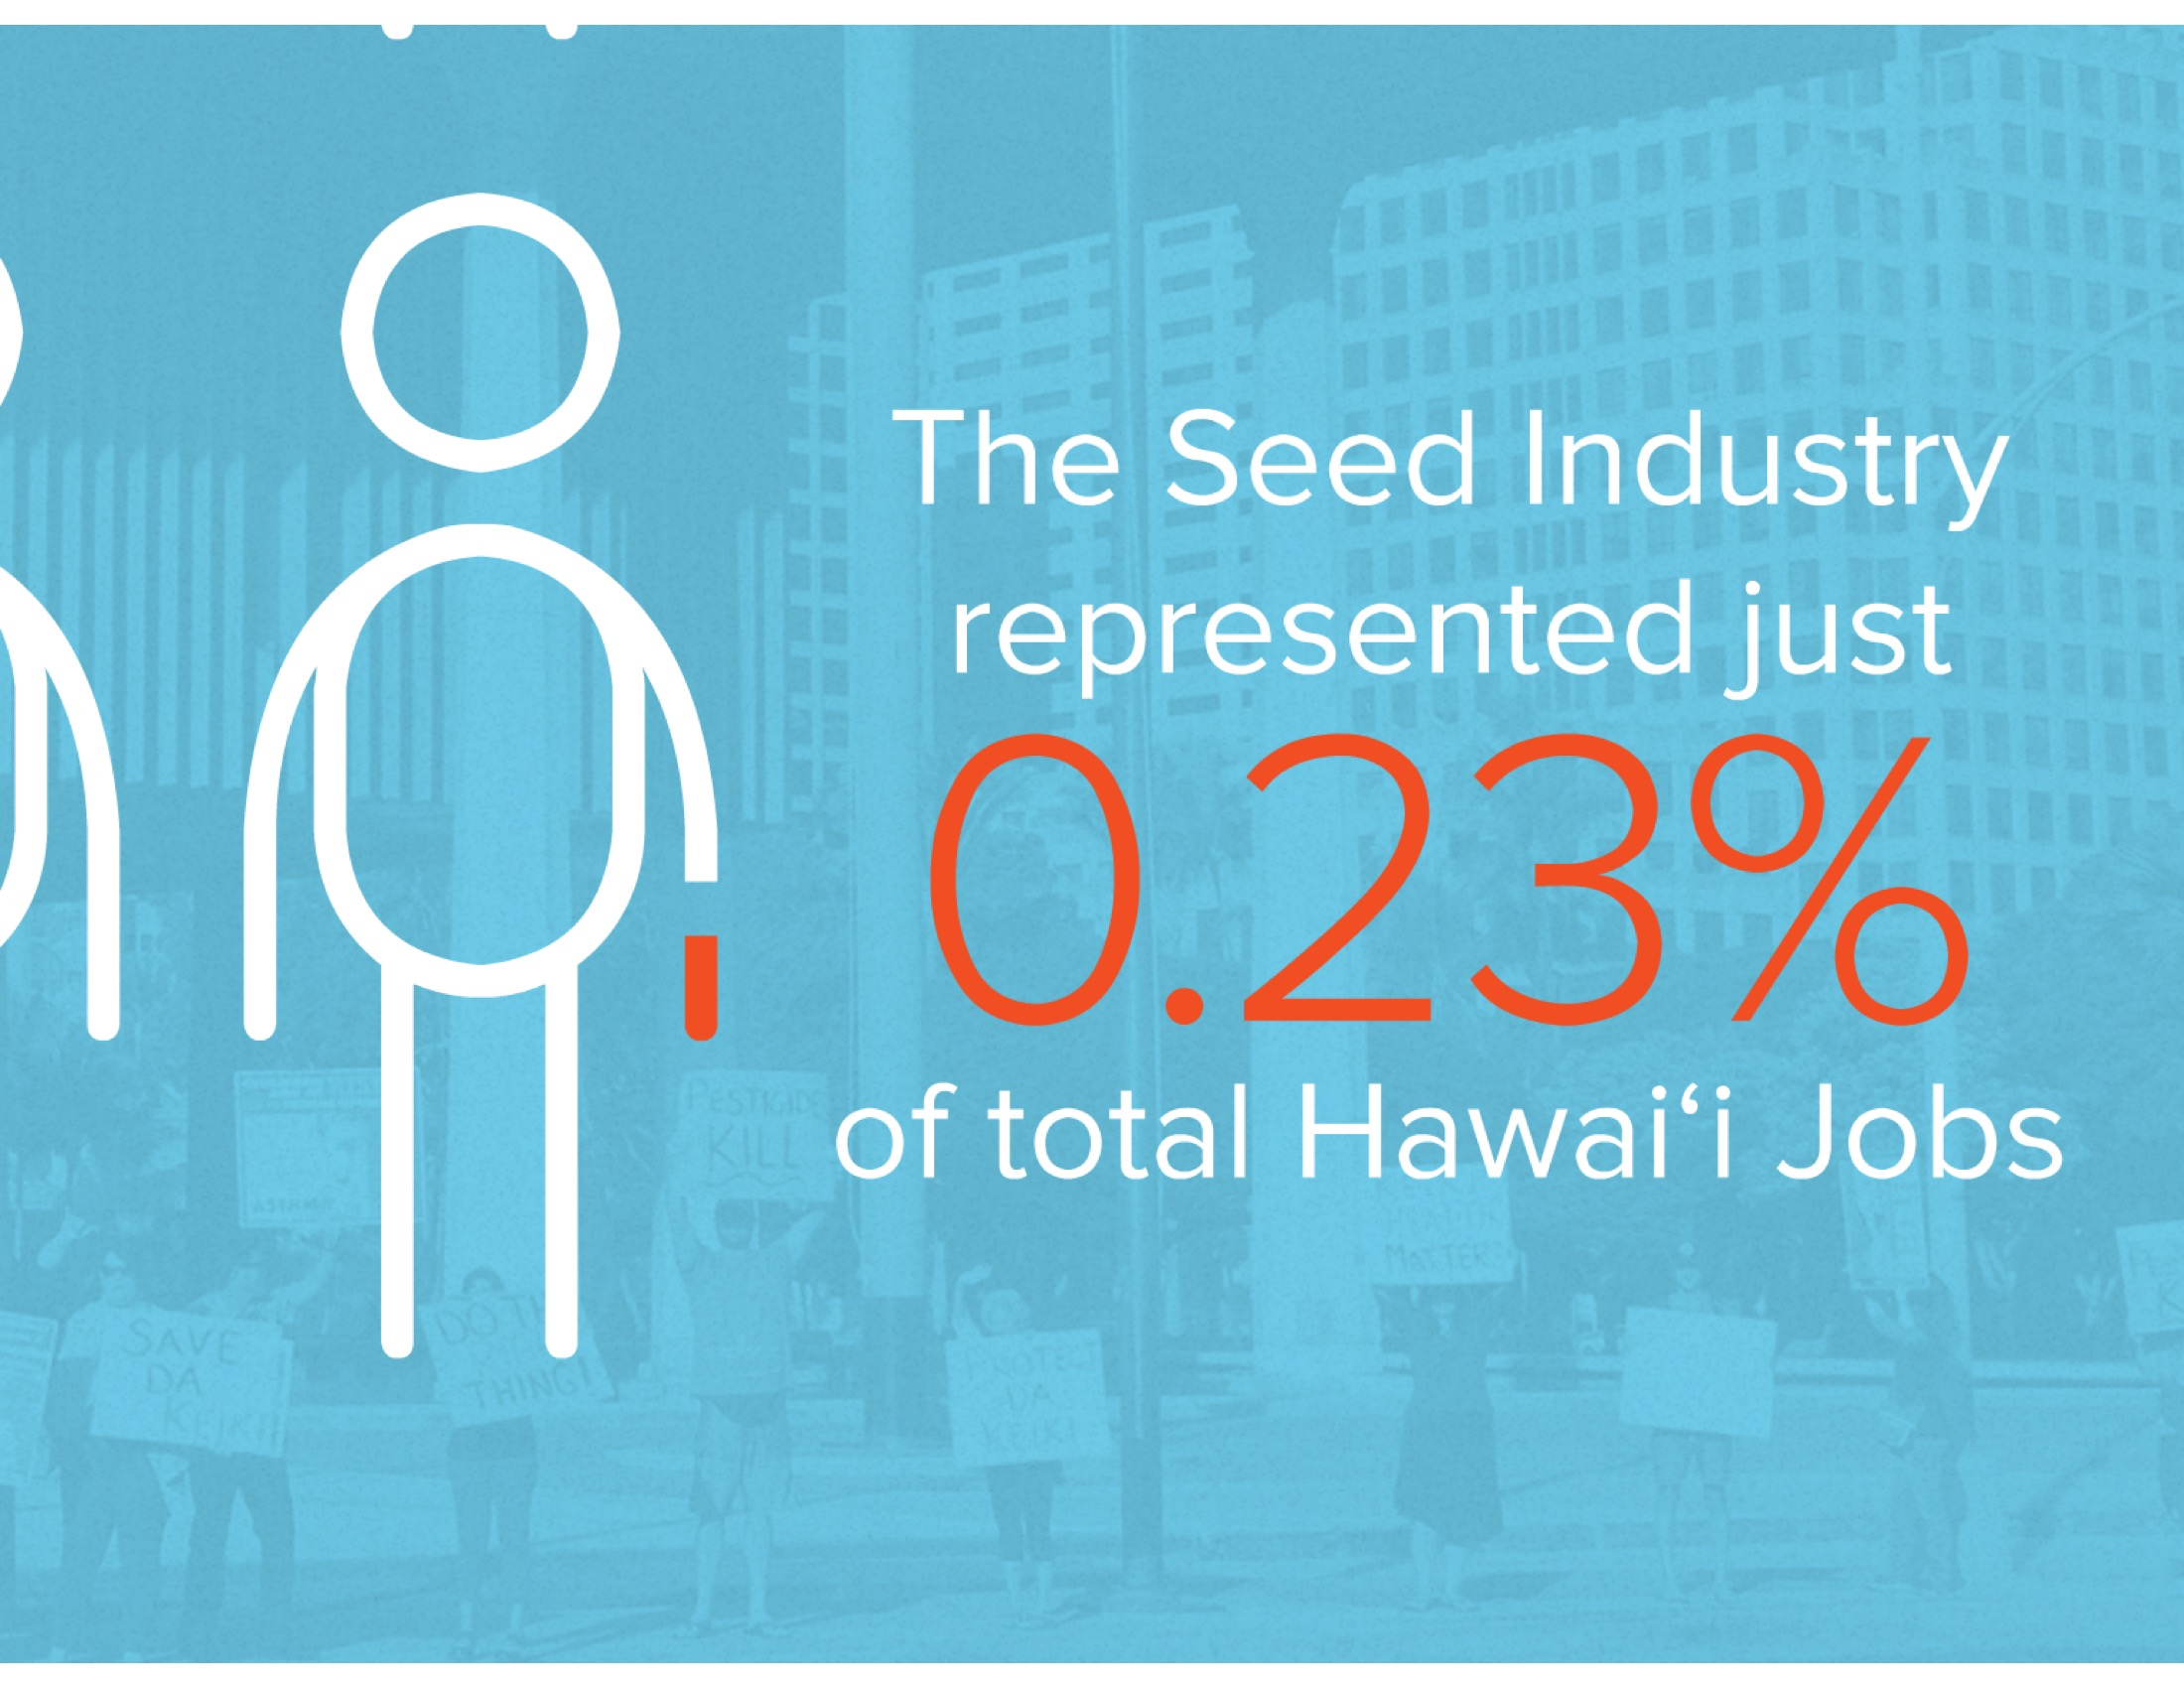 Despite claims that the seed industry is a pillar of Hawai'i's economy, it only employed 1,397 workers in 2012, representing just 0.23% of total Hawai'i jobs.